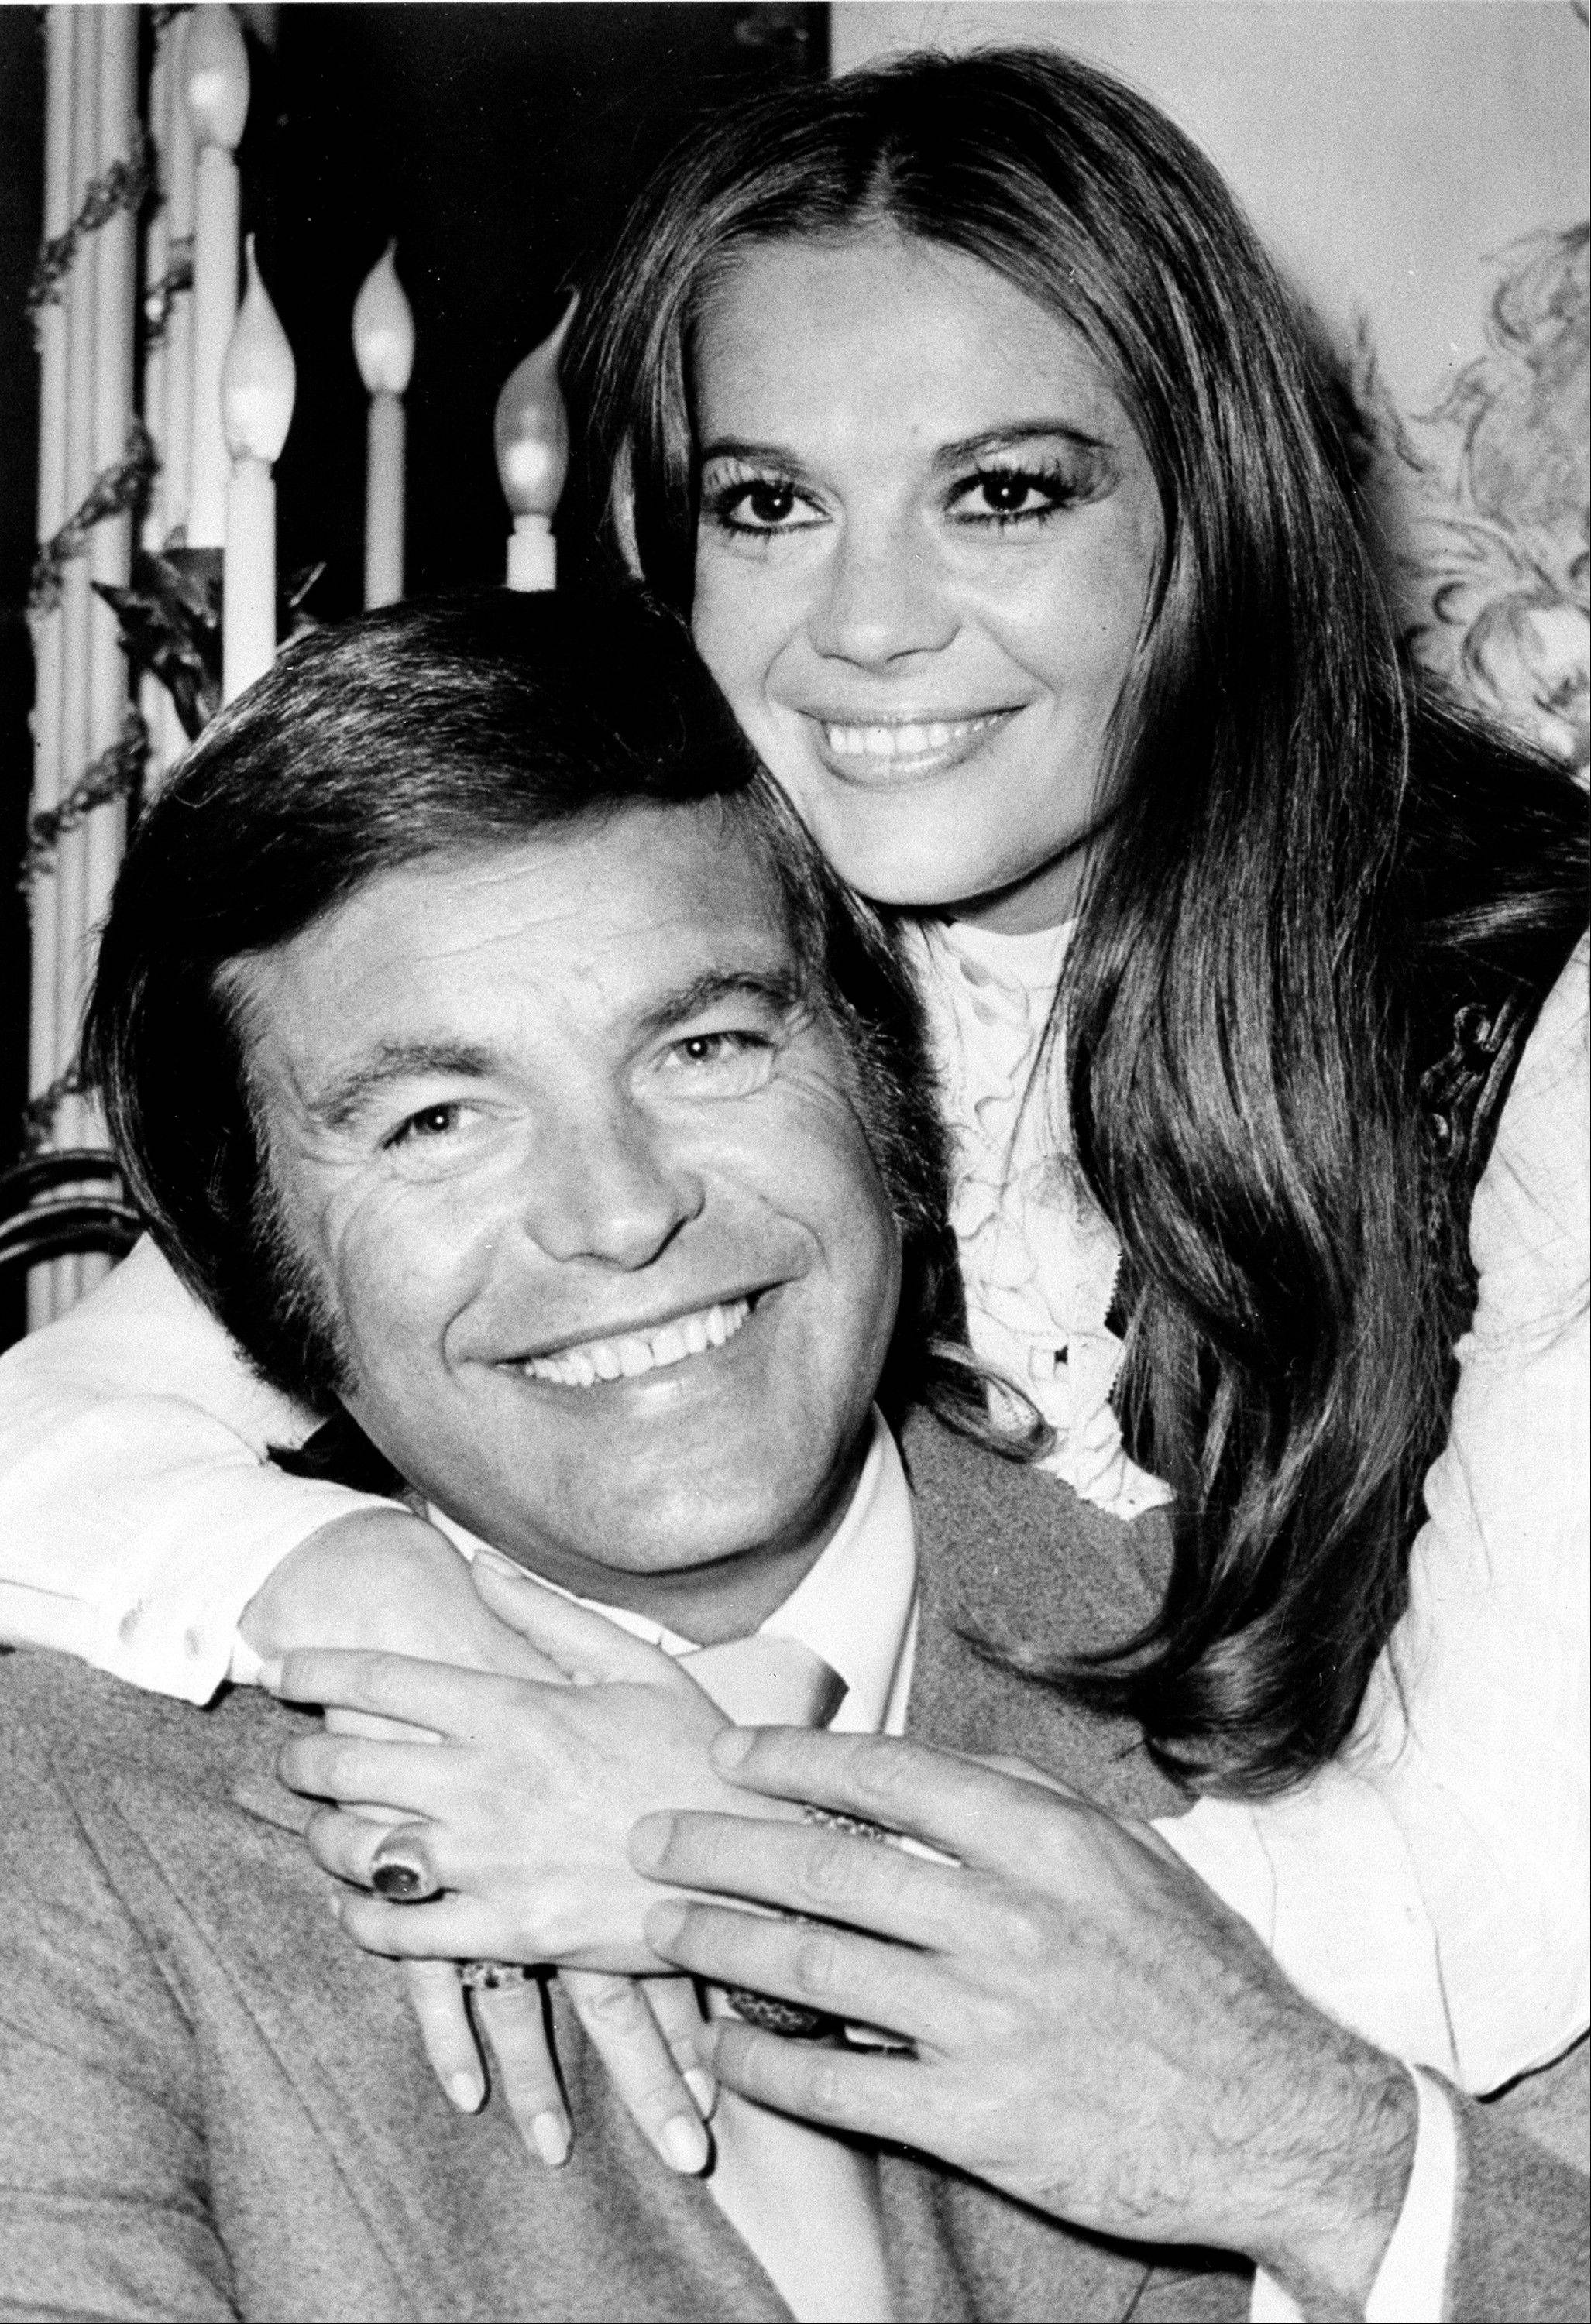 Actor Robert Wagner and his former wife, actress Natalie Wood, pose in a 1972 photo. Authorities have amended Wood's death certificate to reflect some of the lingering questions about how the actress died in the waters off Catalina Island in 1981.